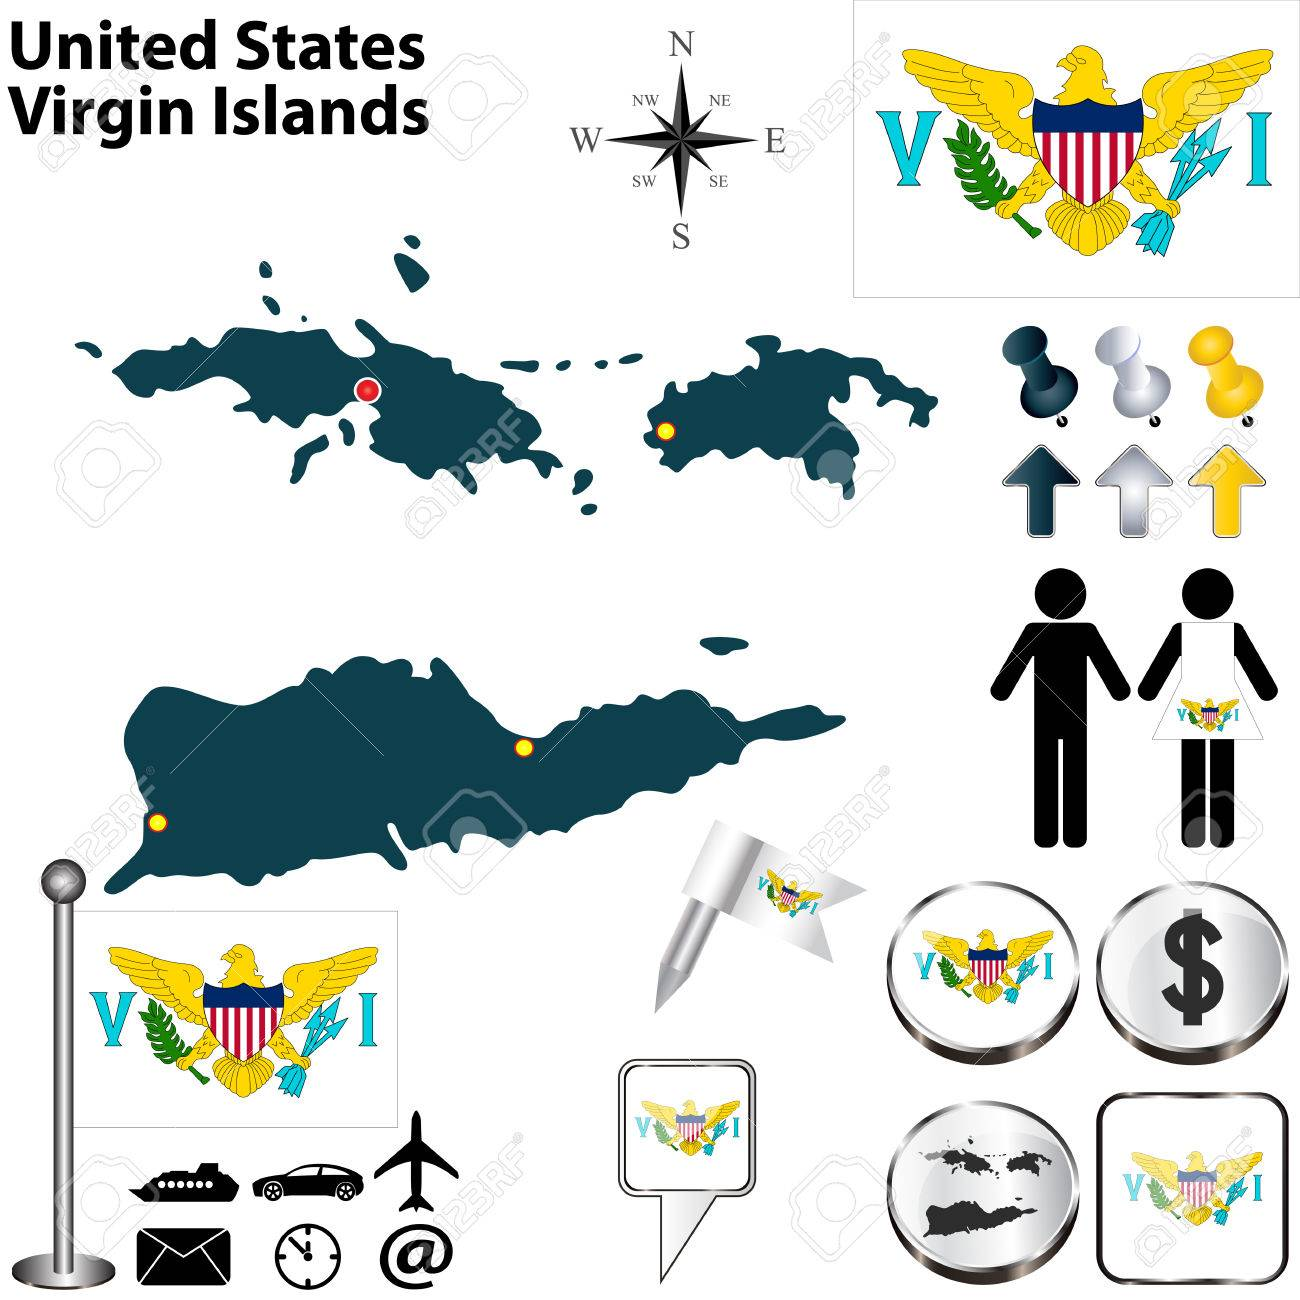 United States Virgin Islands Set With Detailed Country Shape With Region Borders Flags And Icons